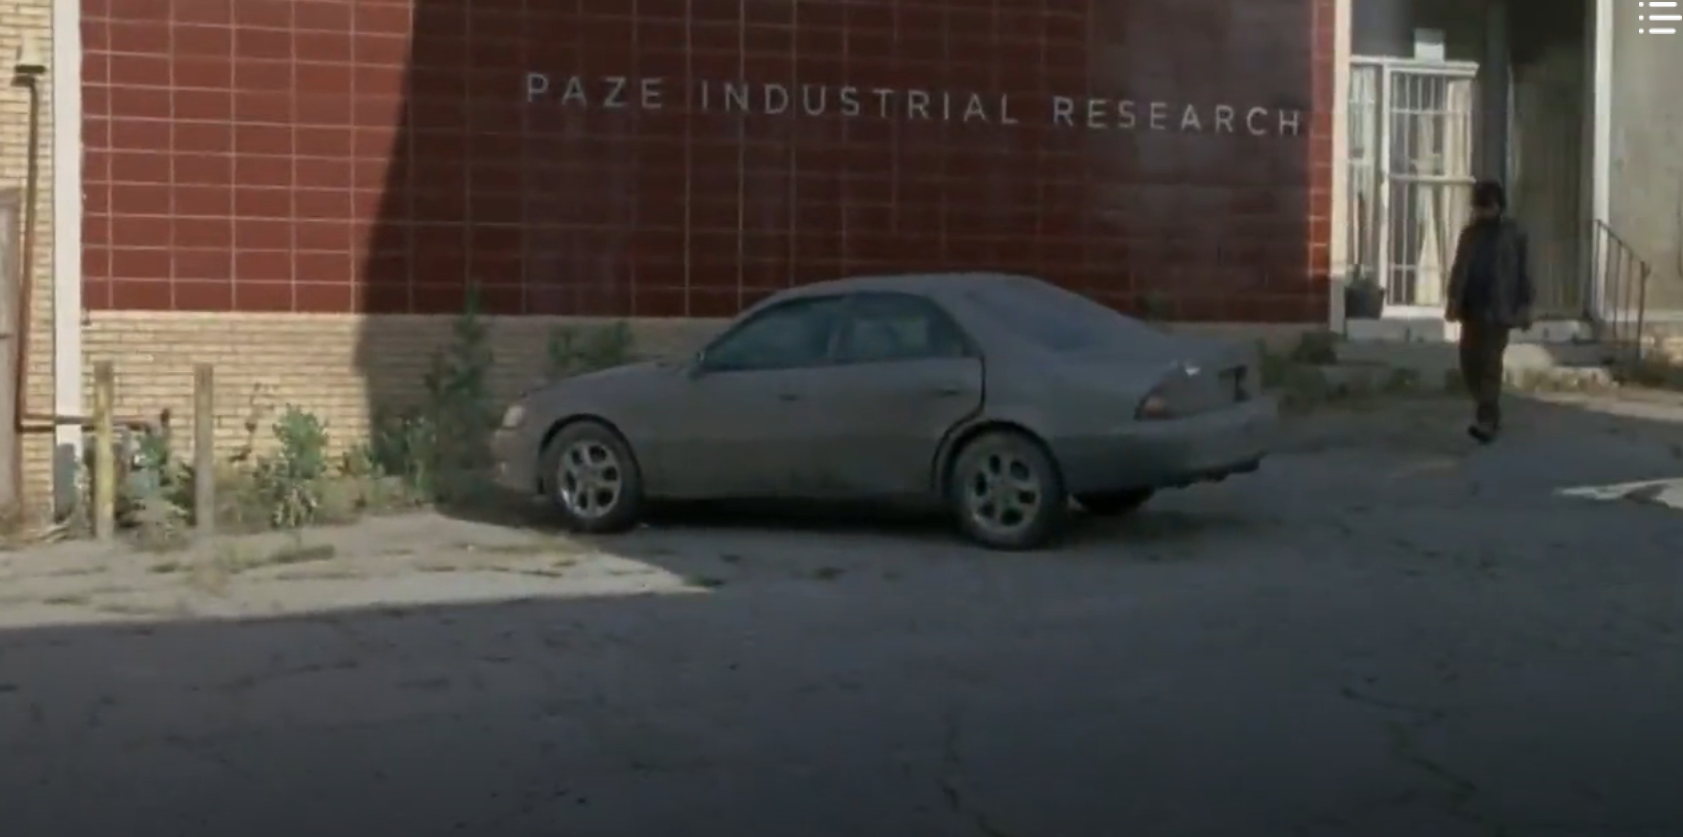 Paze Industrial Research